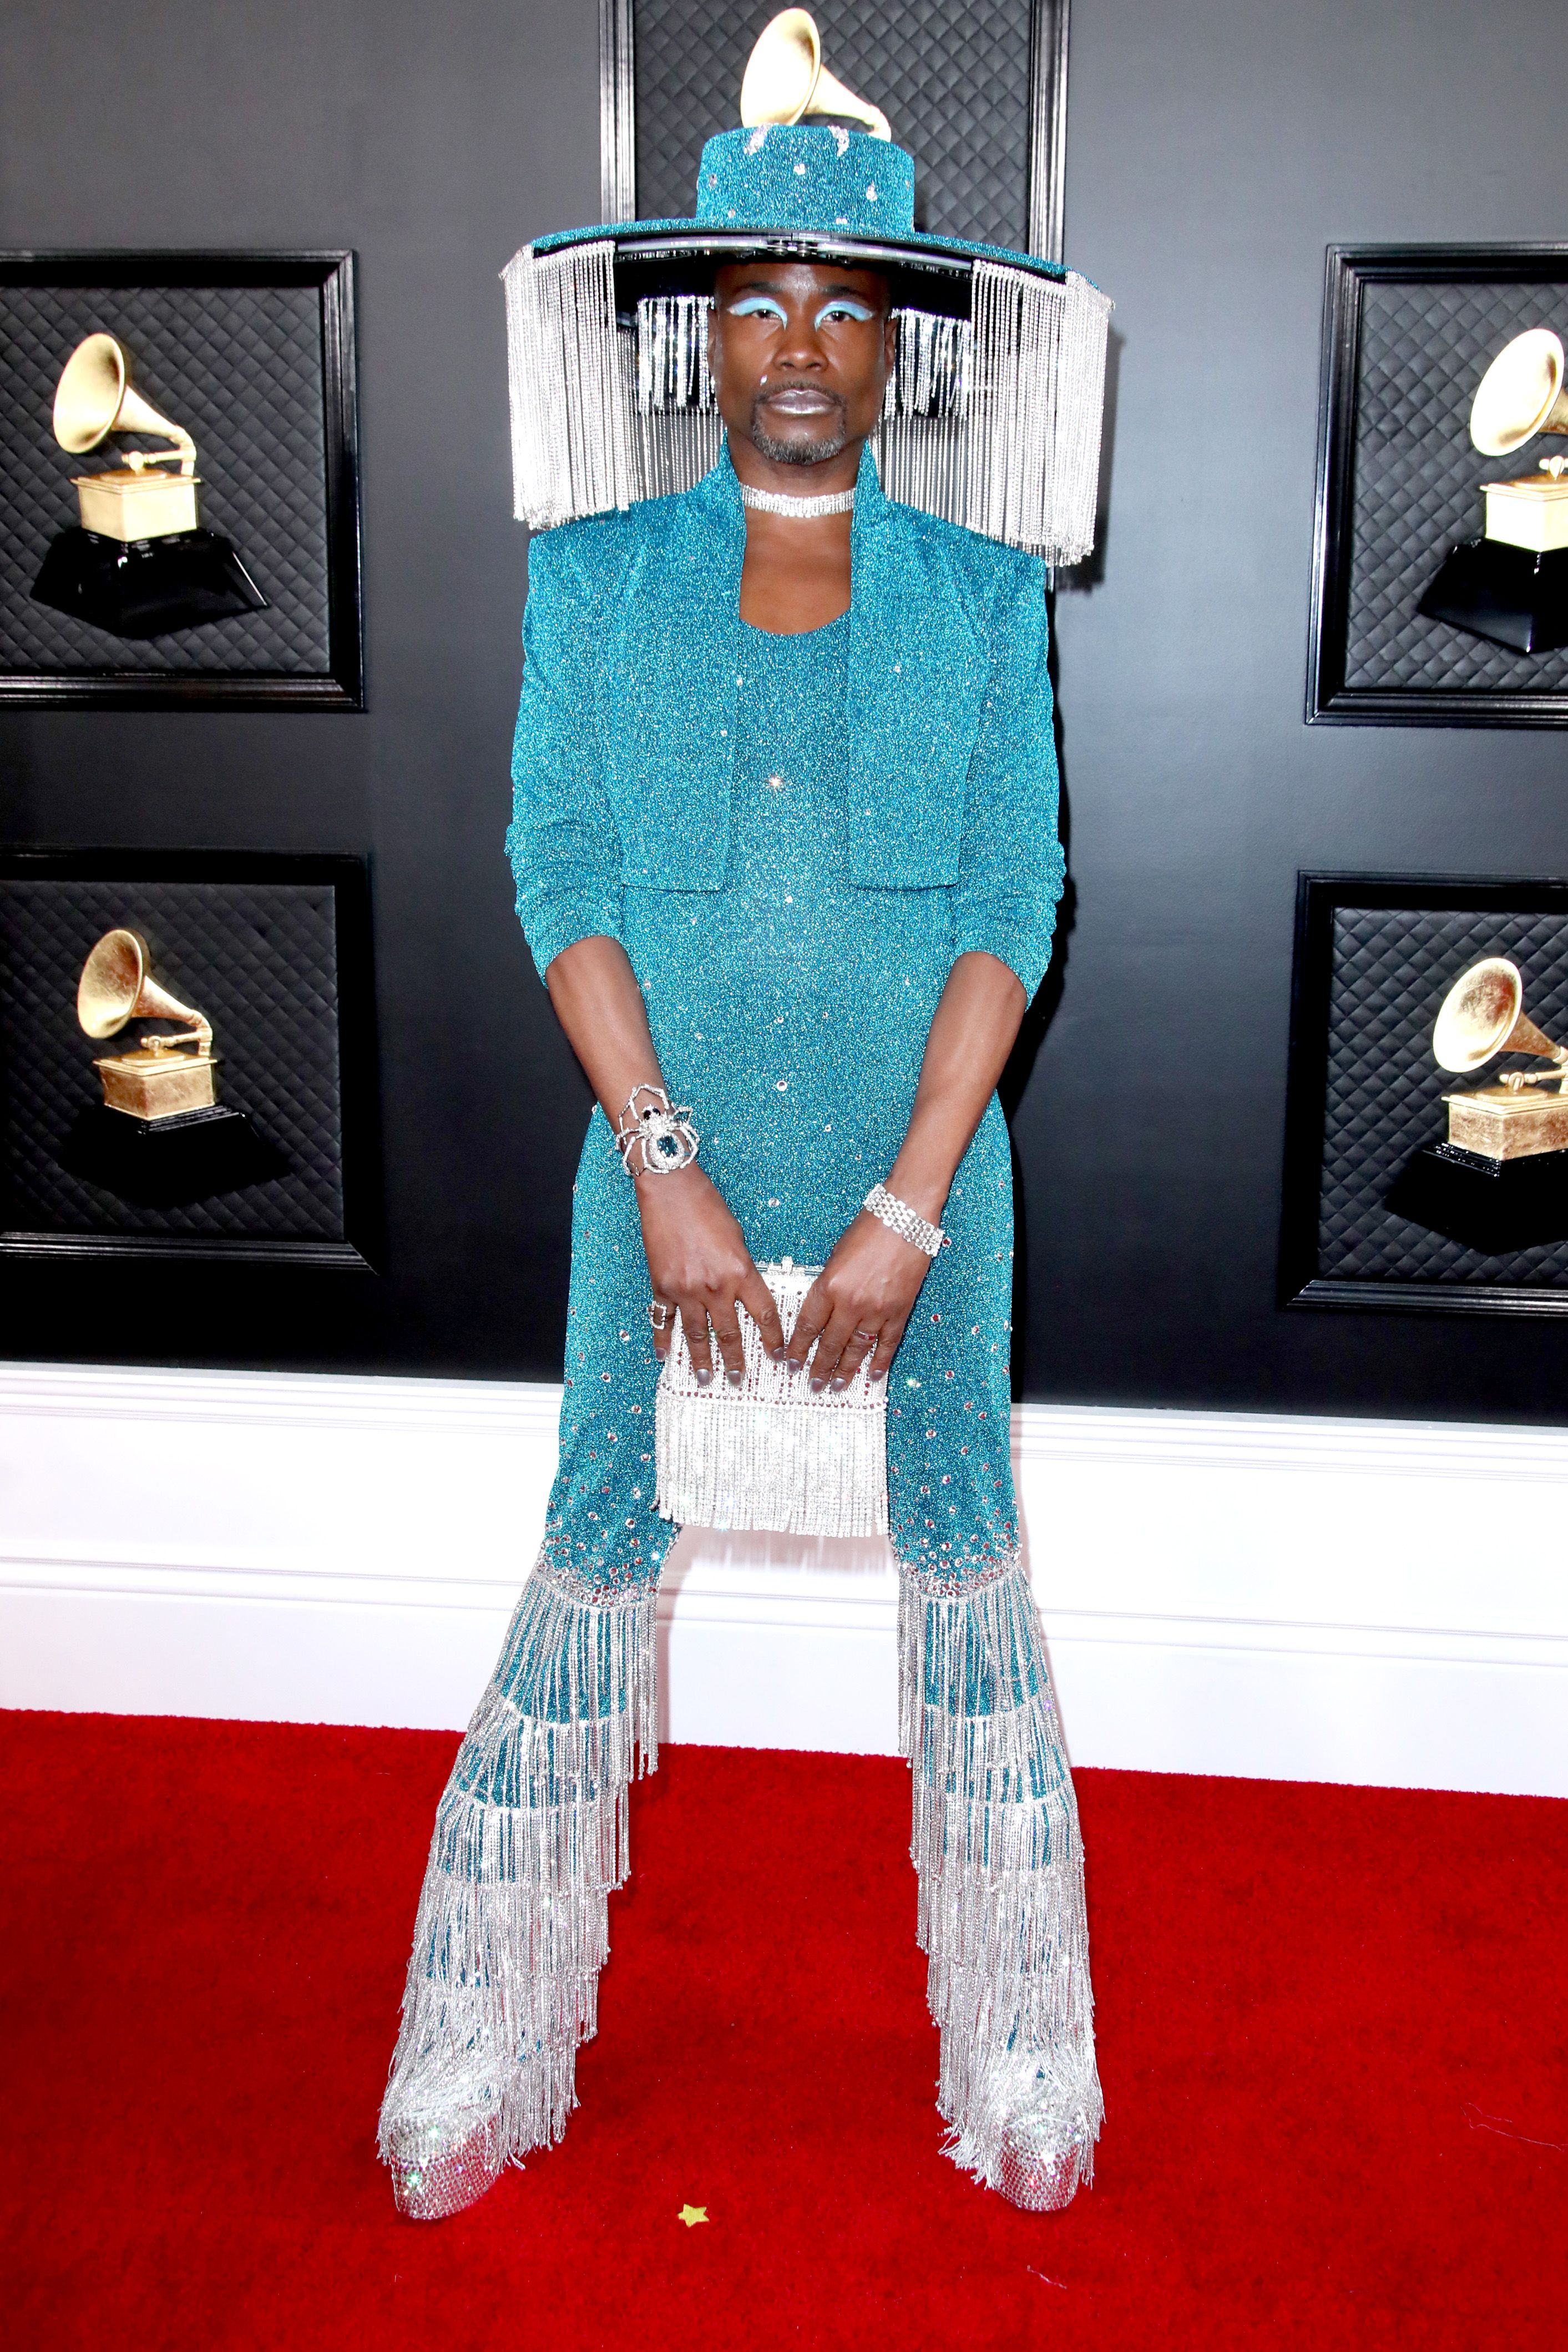 Billy Porter 62nd Annual Grammy Awards, Arrivals, Los Angeles, USA - 26 Jan 2020